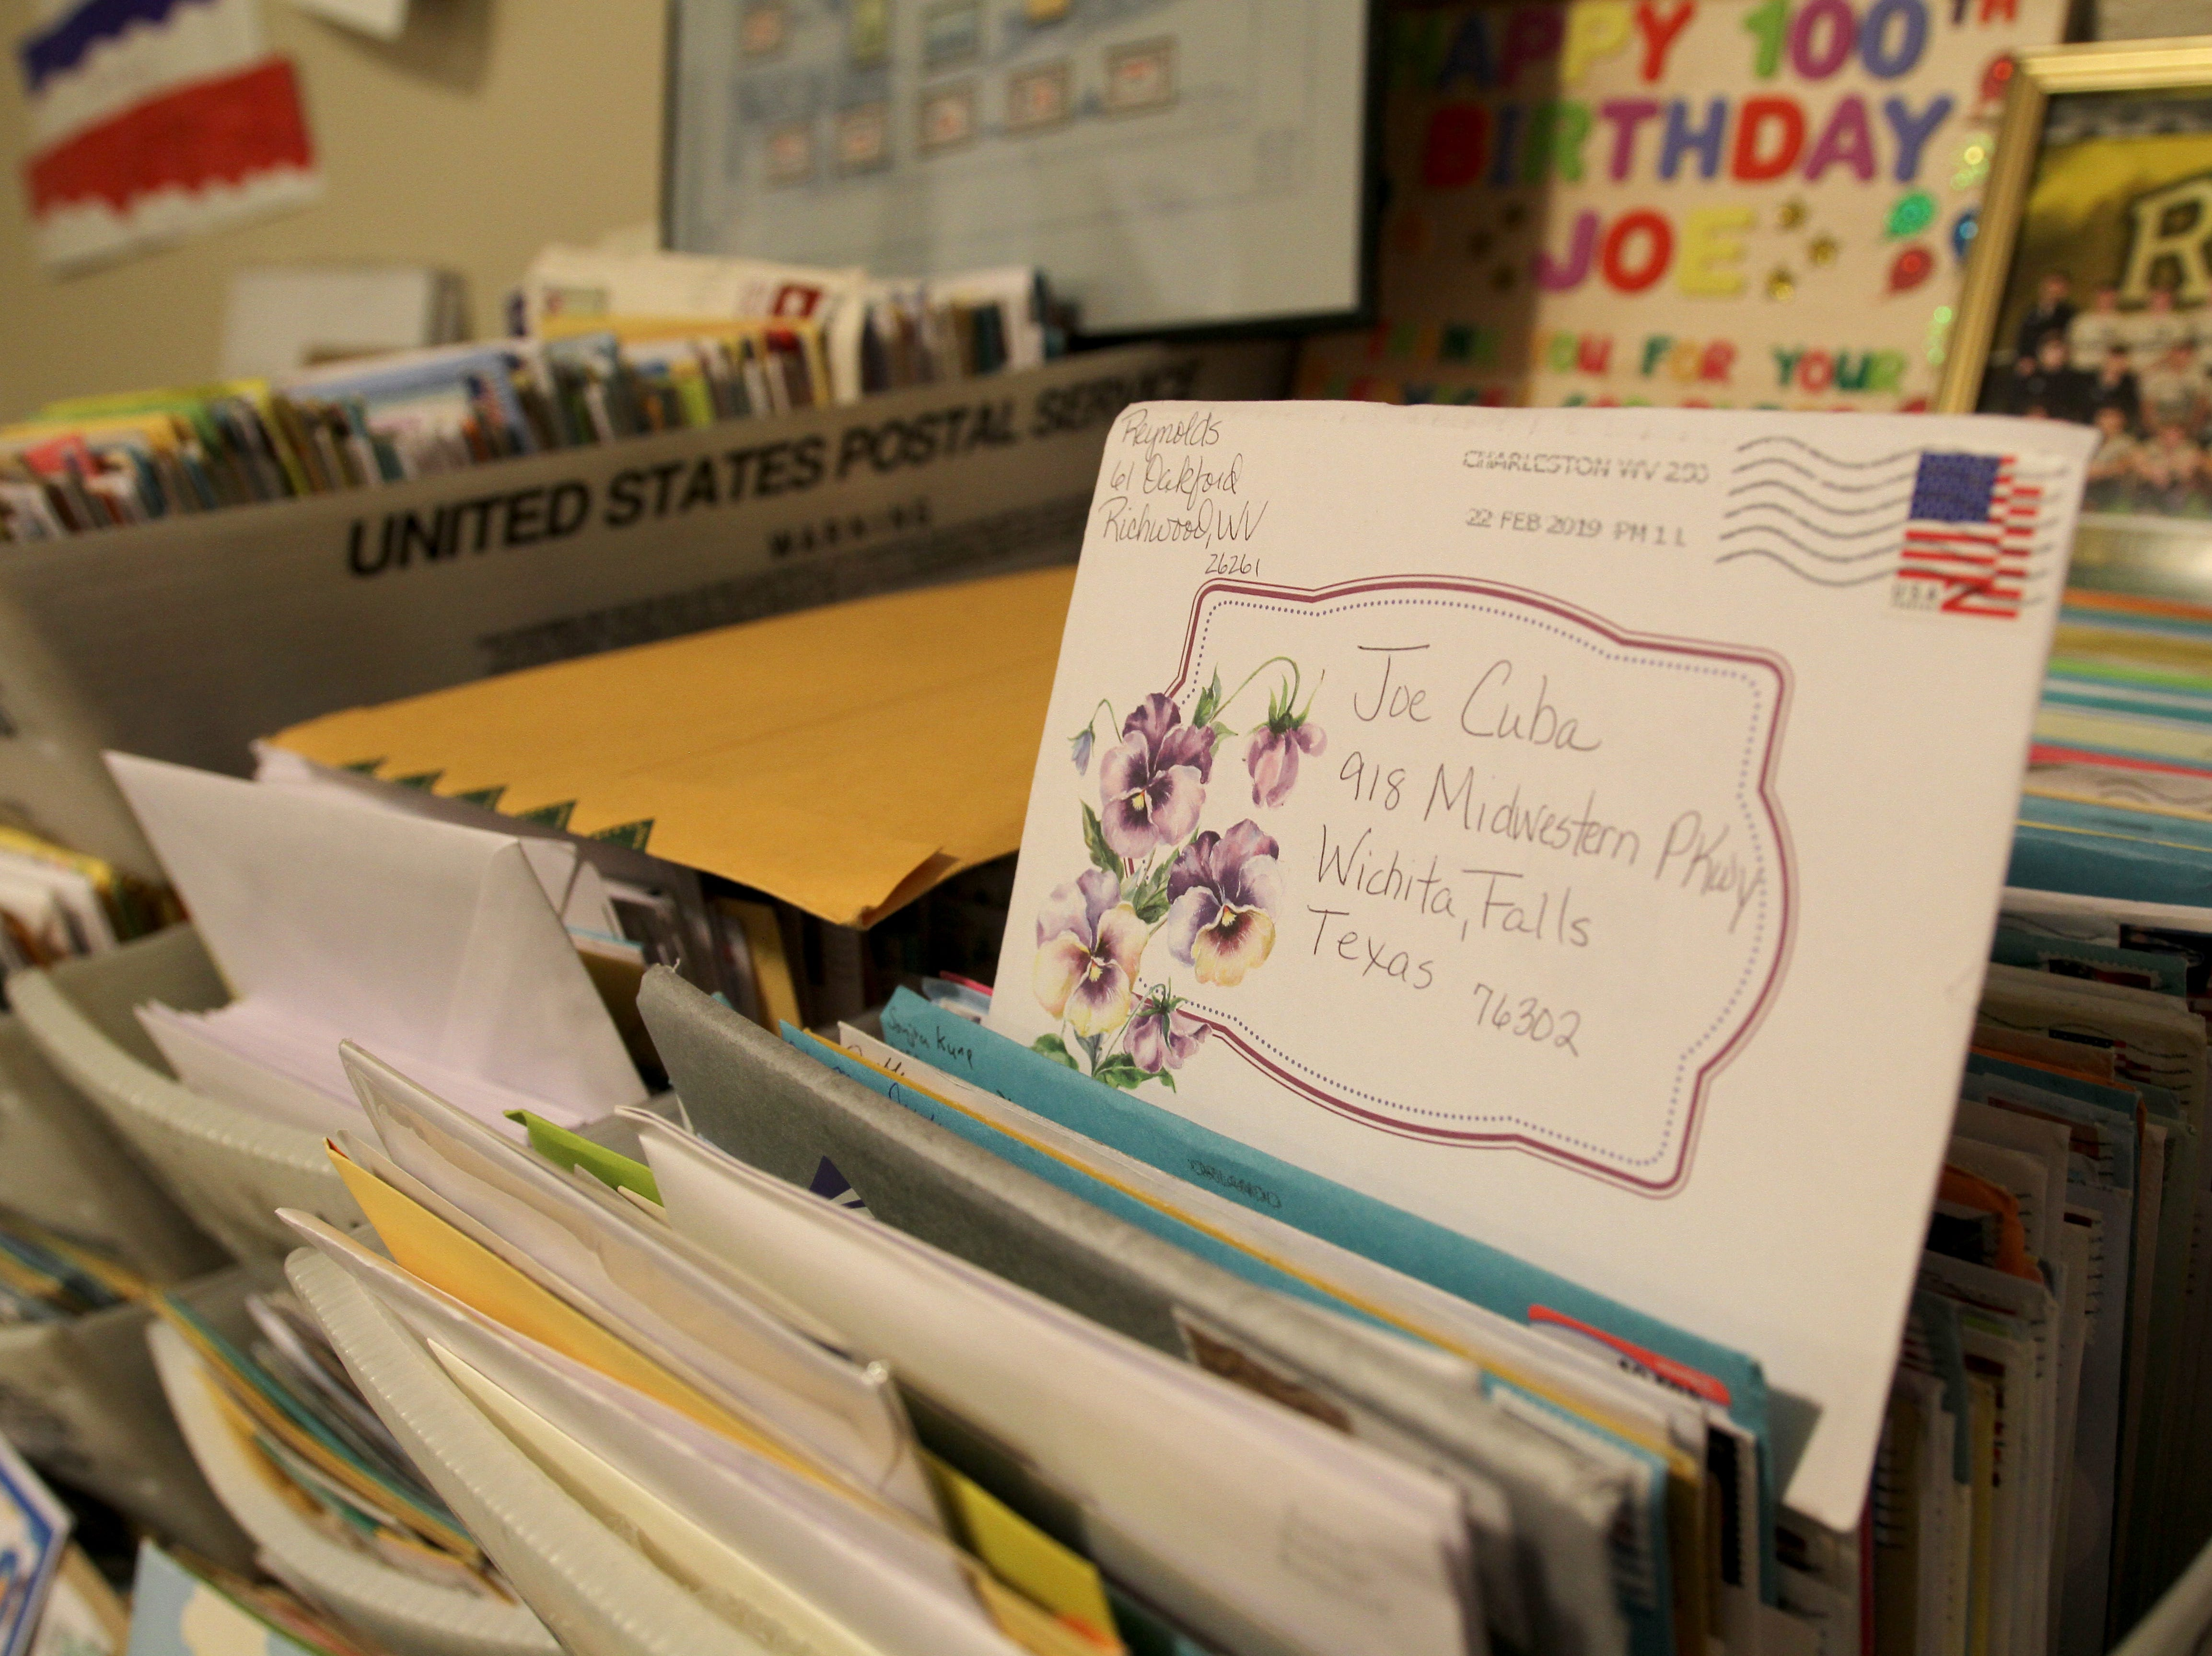 Thousands of letters were sent to WWII veteran Joe Cuba for his 100th birthday Saturday, March 2, 2019, at Brookdale Midwestern.